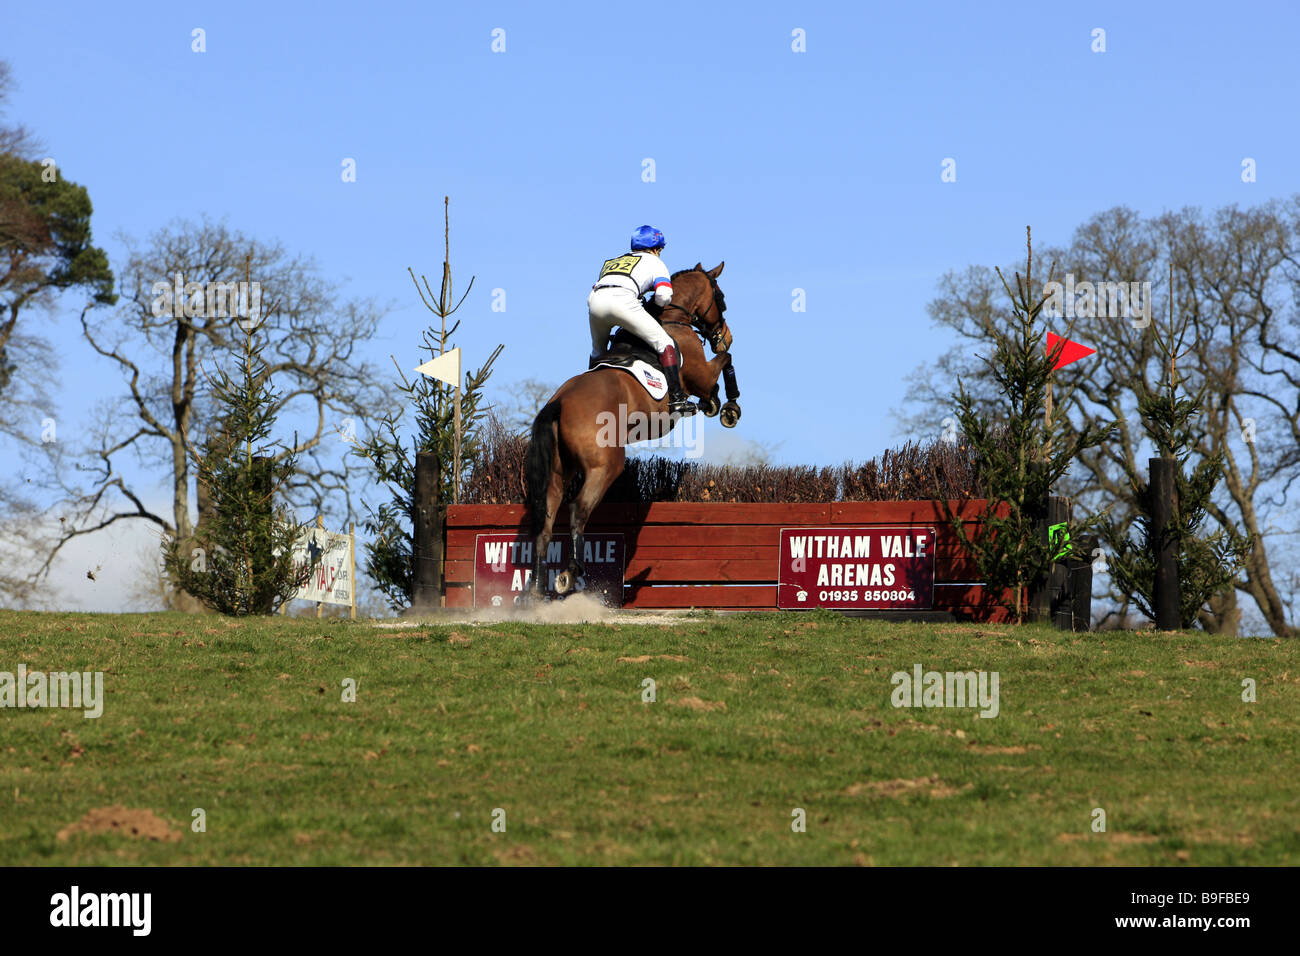 One day Horse trials event covering water jumps and unusual terrain - Stock Image